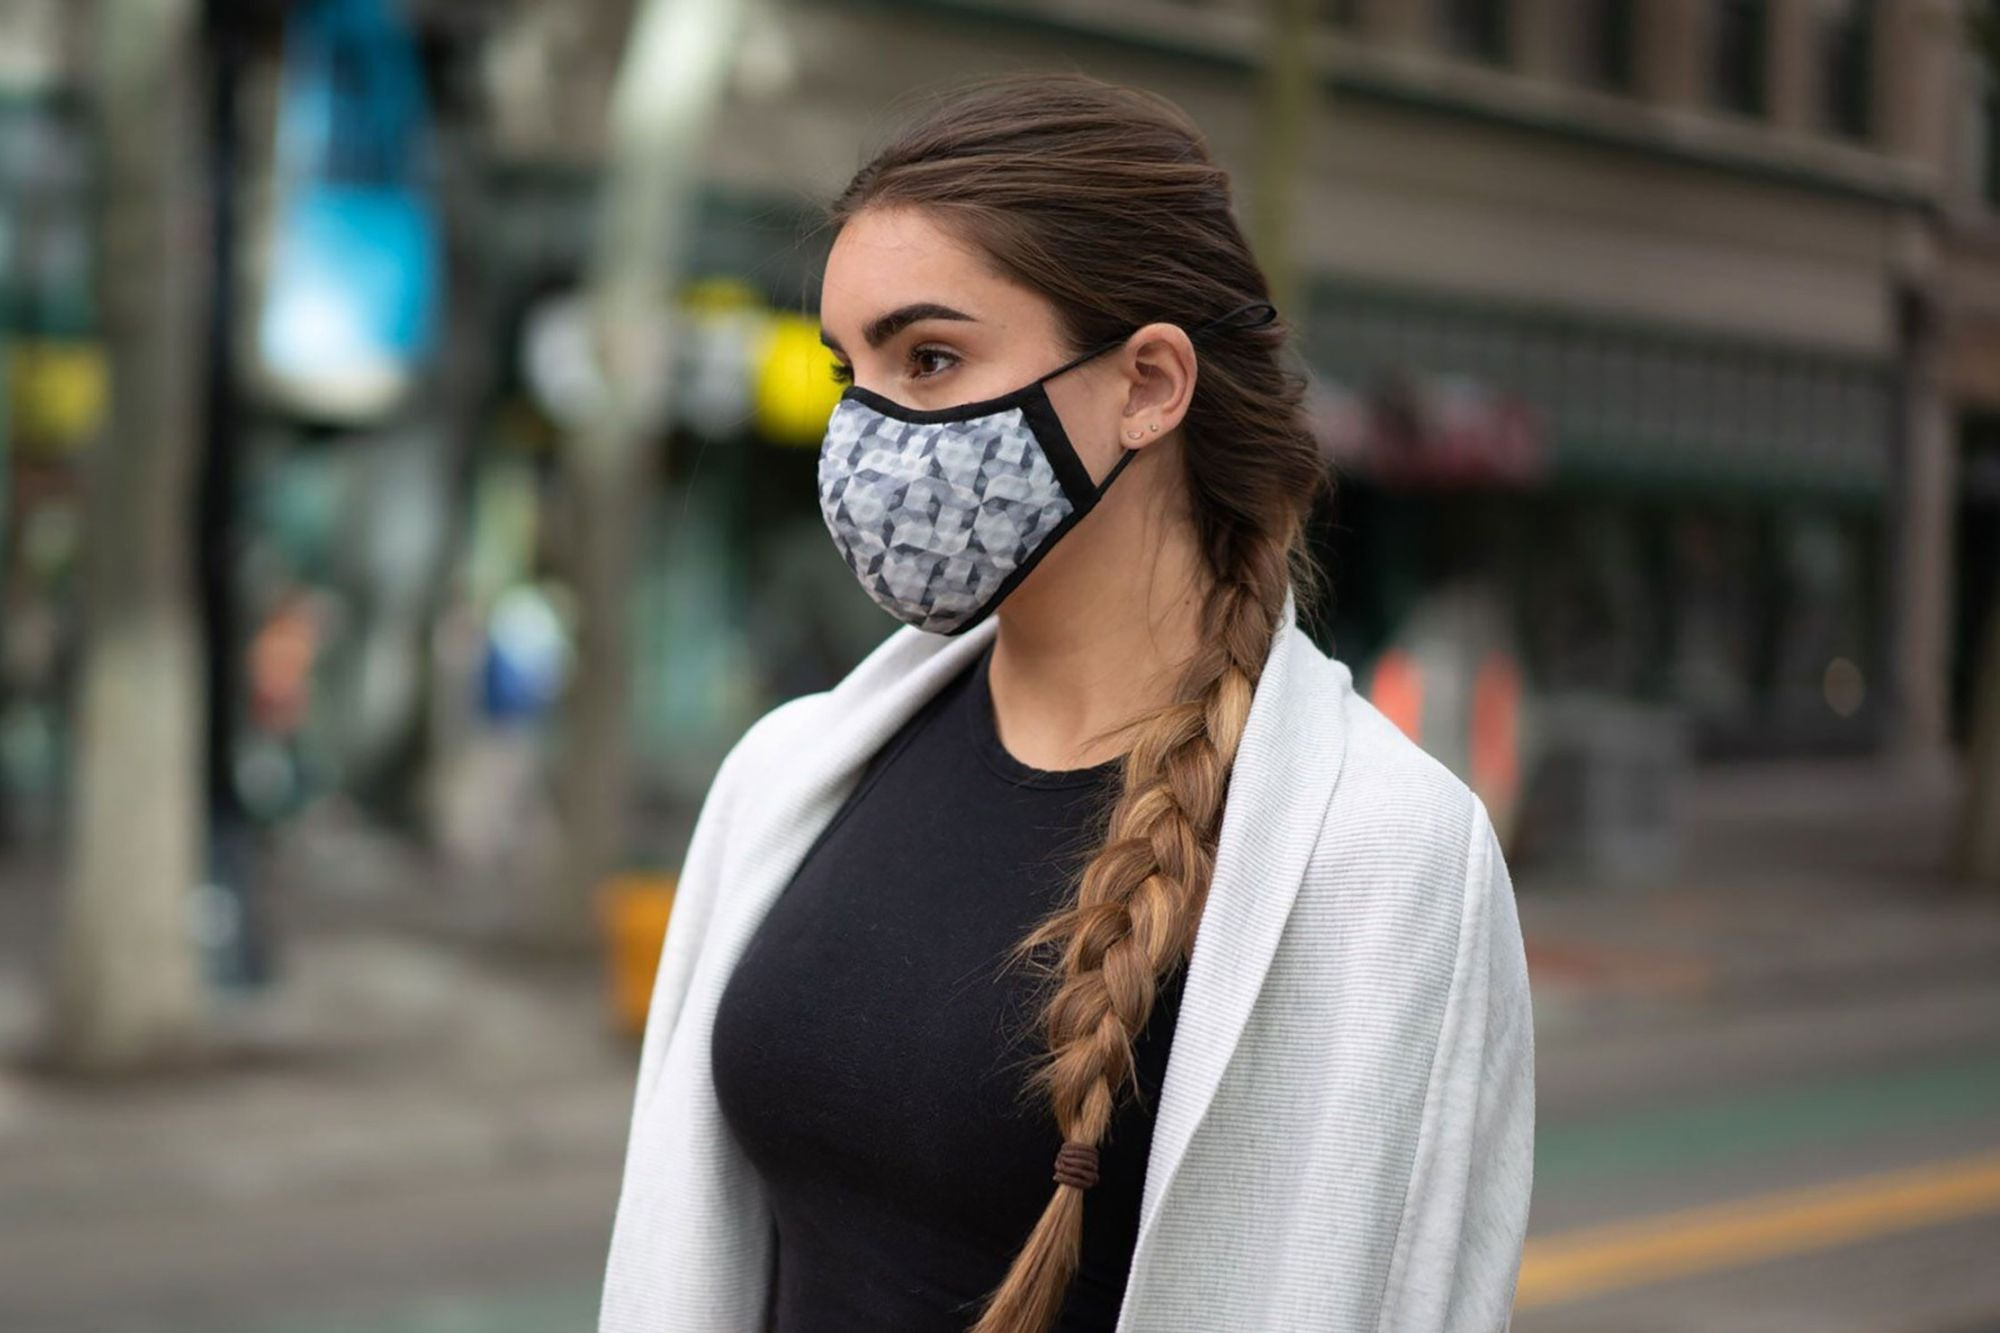 This Air Mask Company Struggled to Take Off. Then Came Coronavirus.